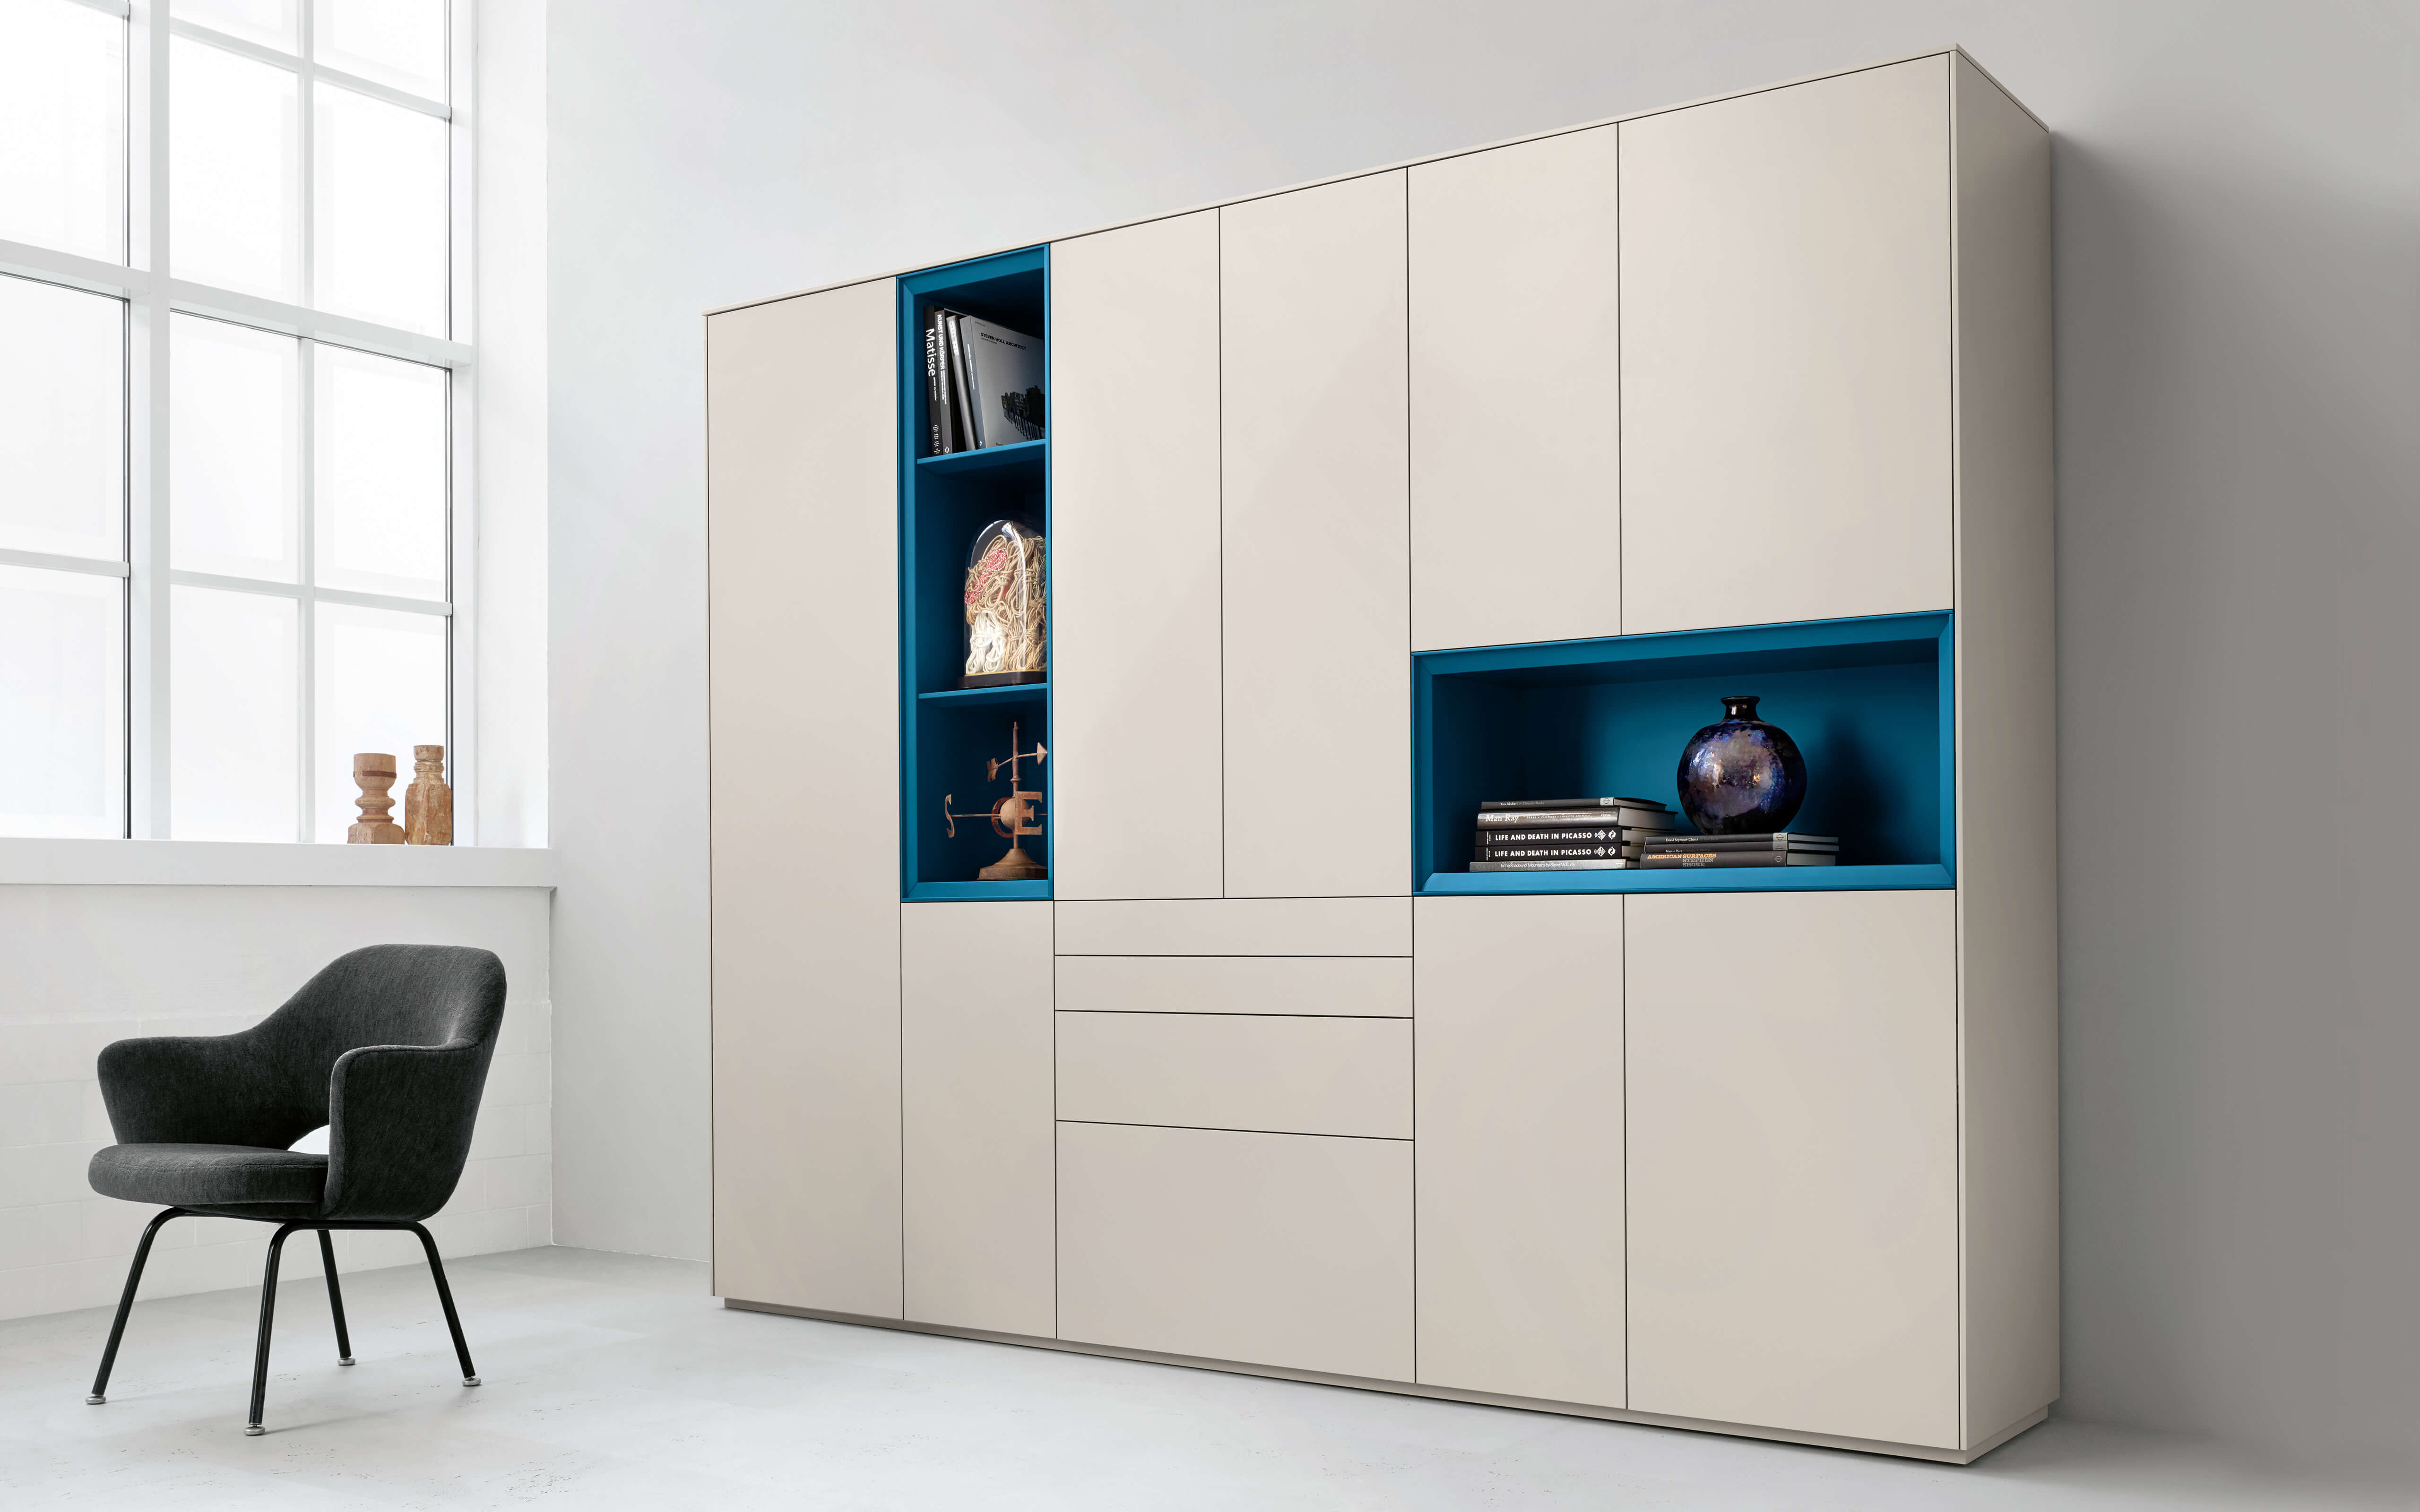 fantastisch kleiderschrank flach ideen die kinderzimmer design ideen. Black Bedroom Furniture Sets. Home Design Ideas